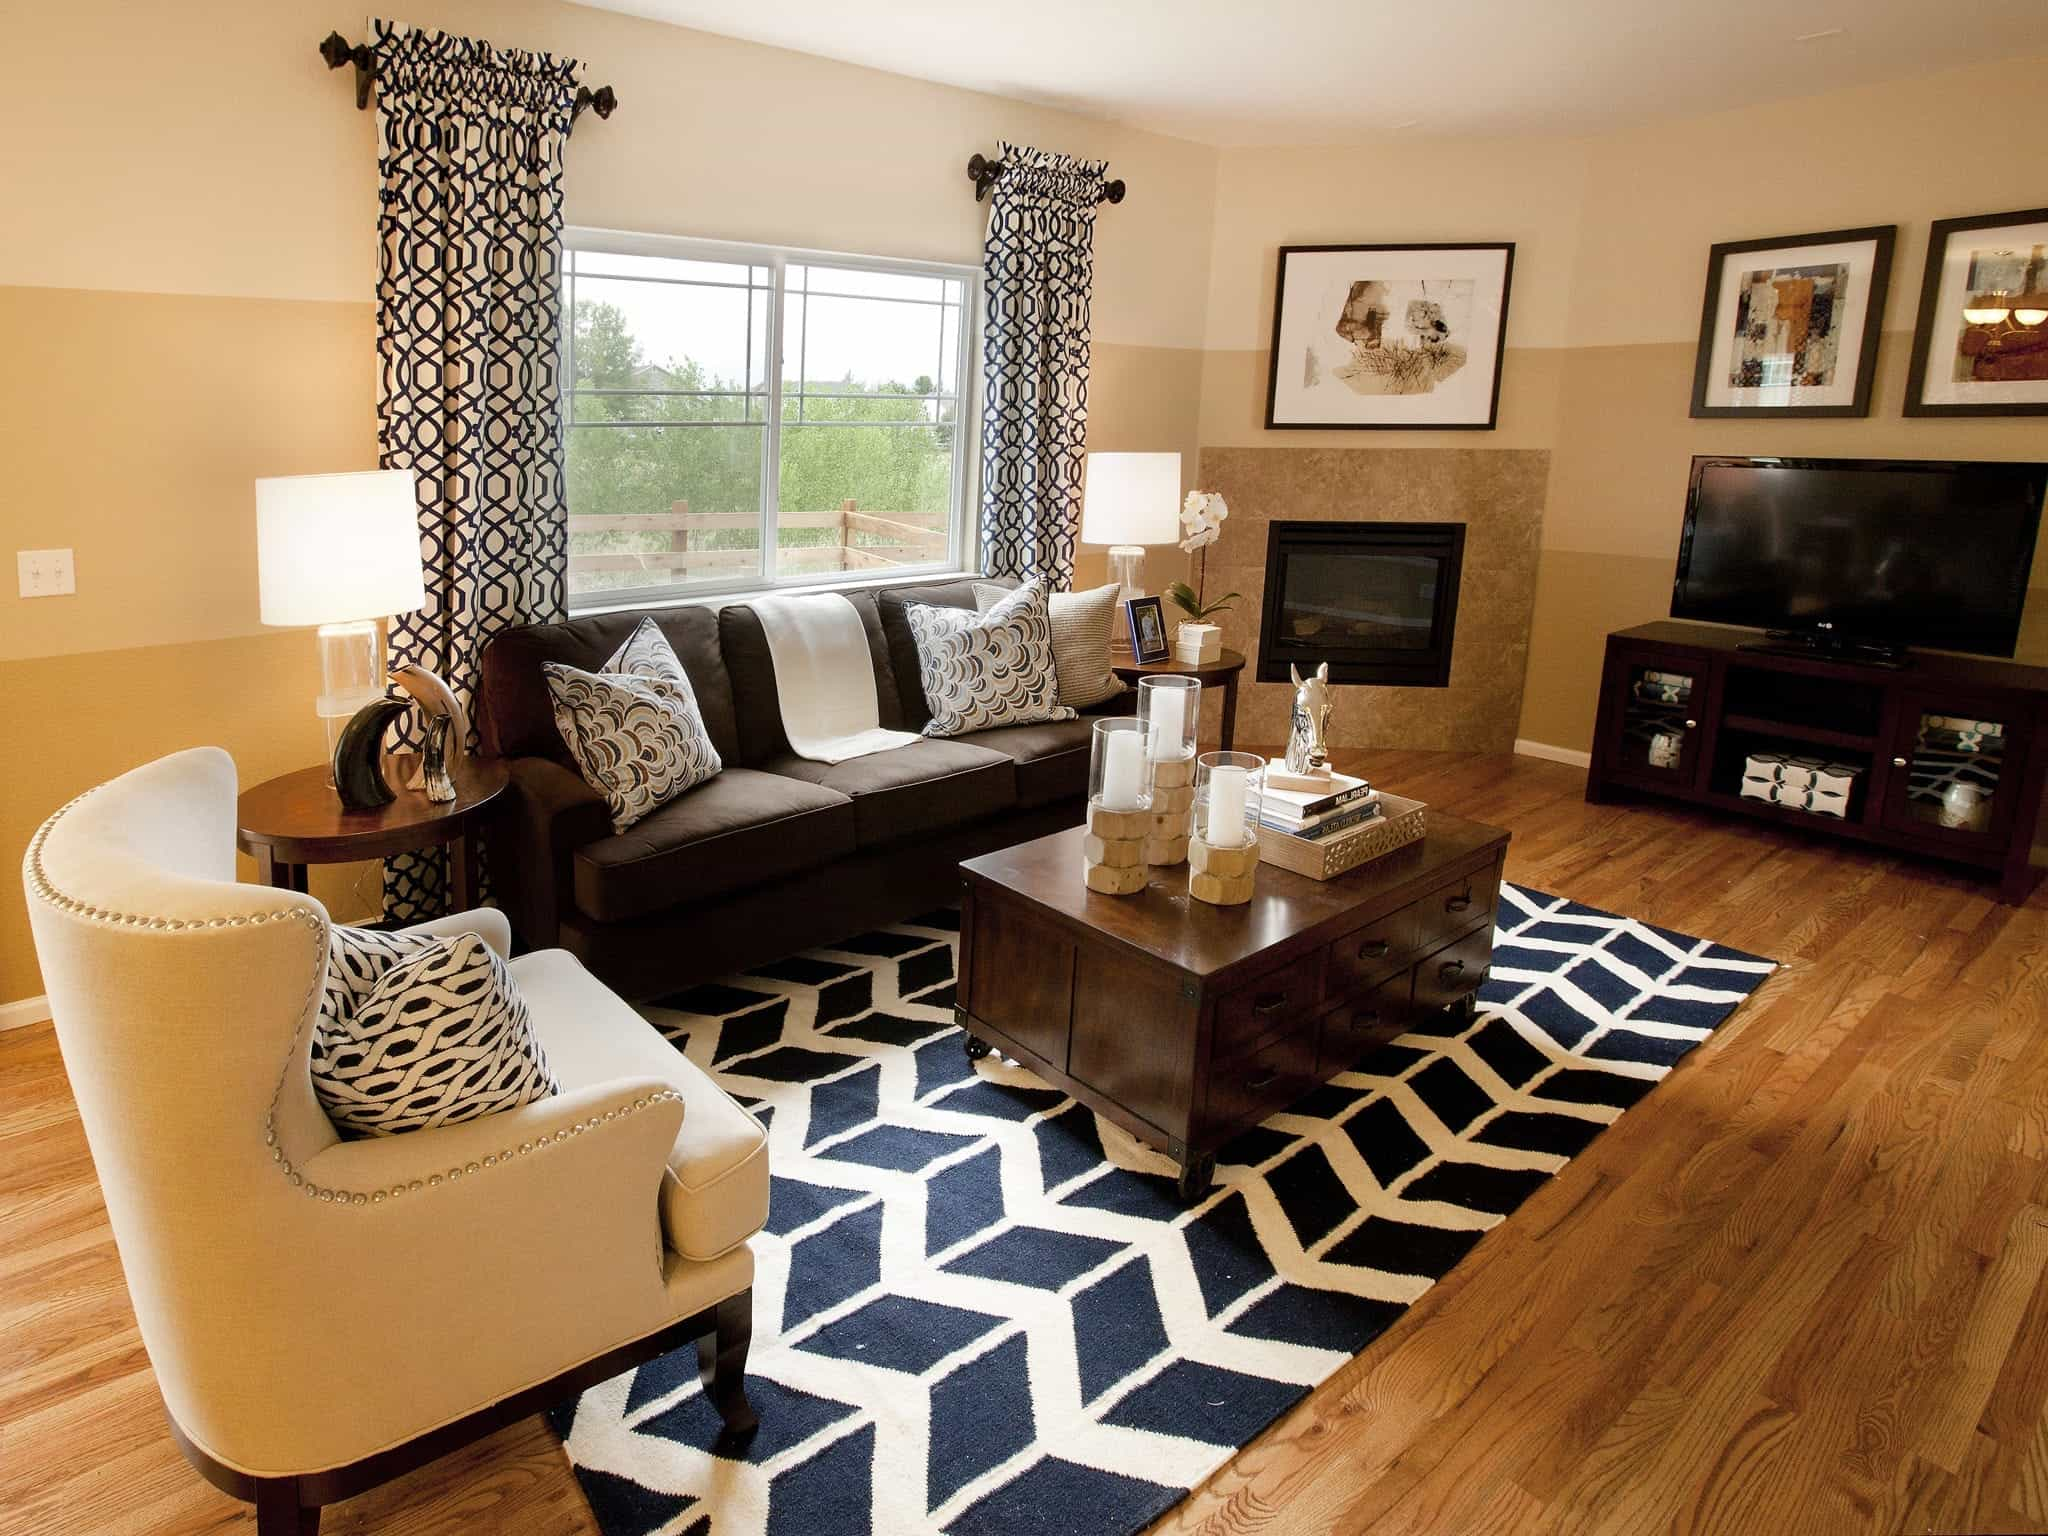 Contemporary Living Room Features A Corner Fireplace And Graphic Print Drapes And Rug (View 3 of 13)